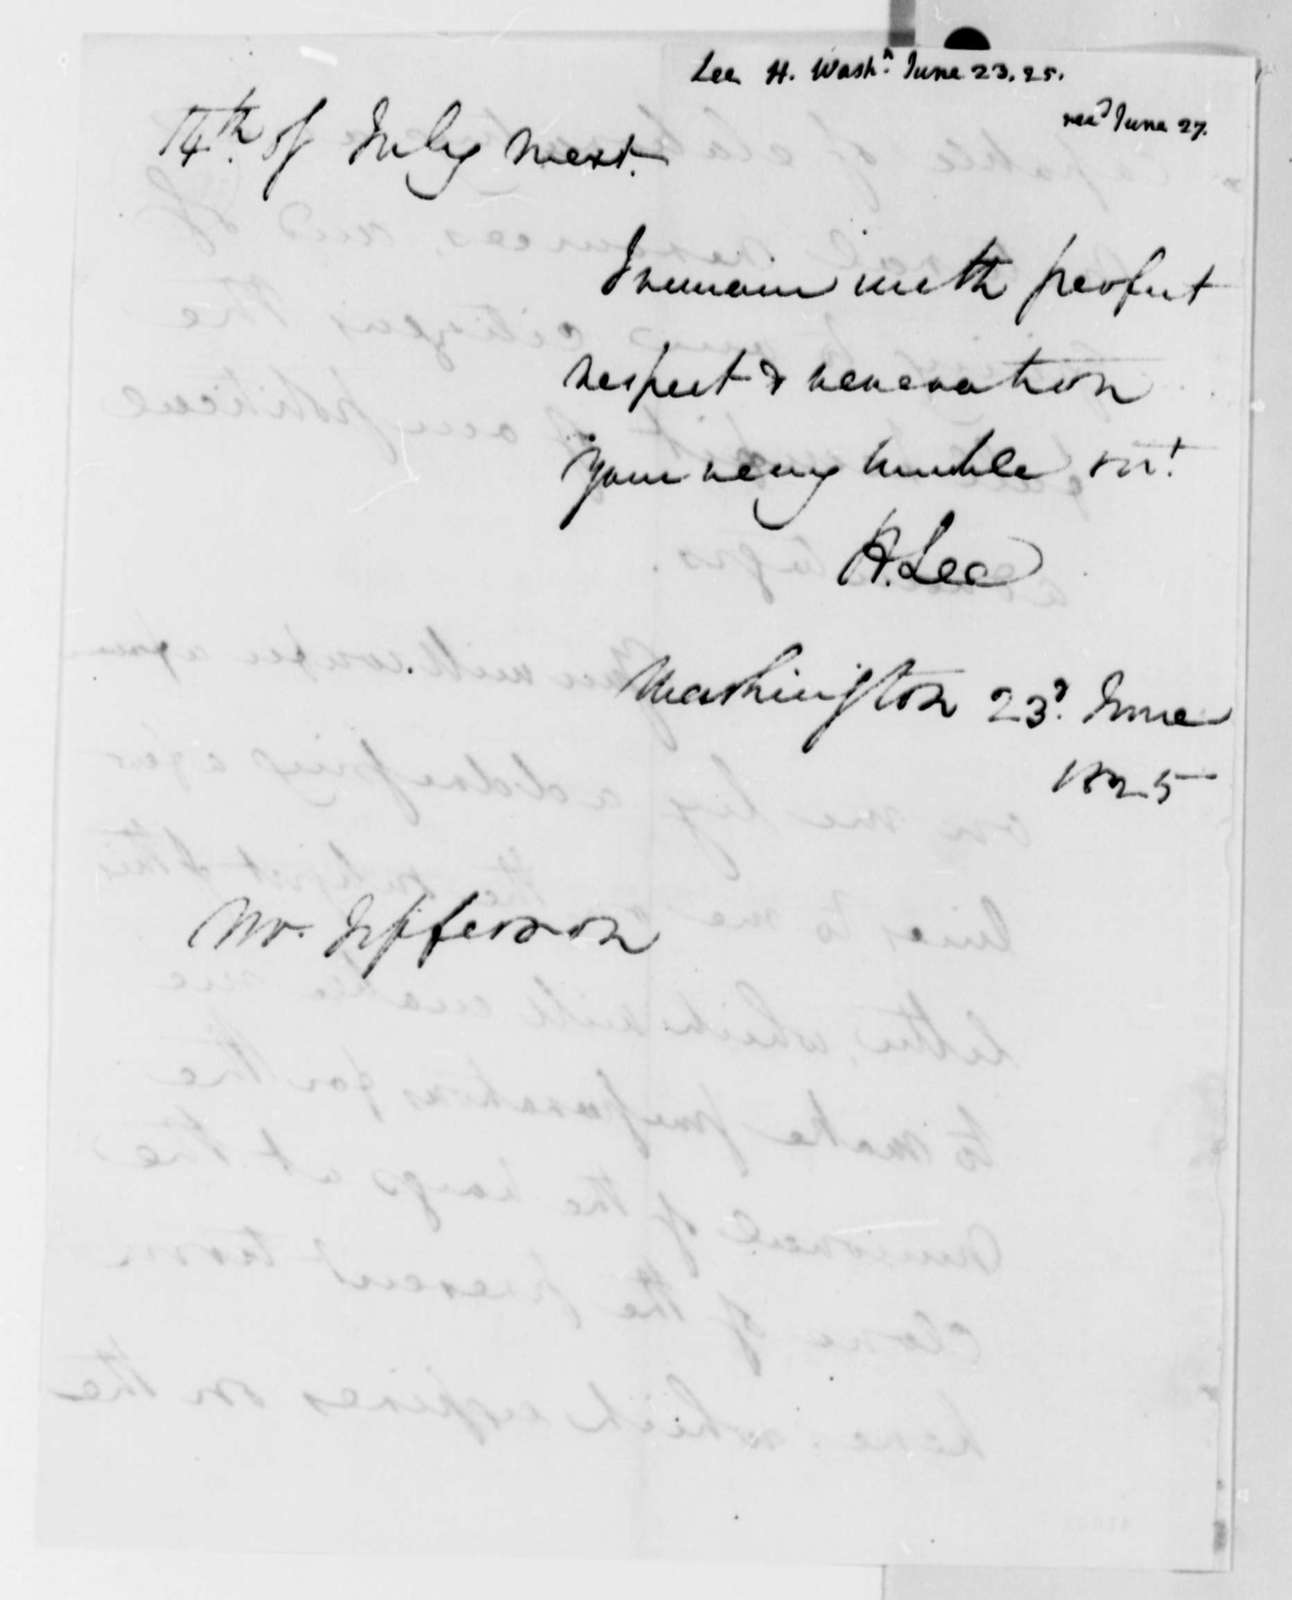 Henry Lee, Jr. to Thomas Jefferson, June 23, 1825